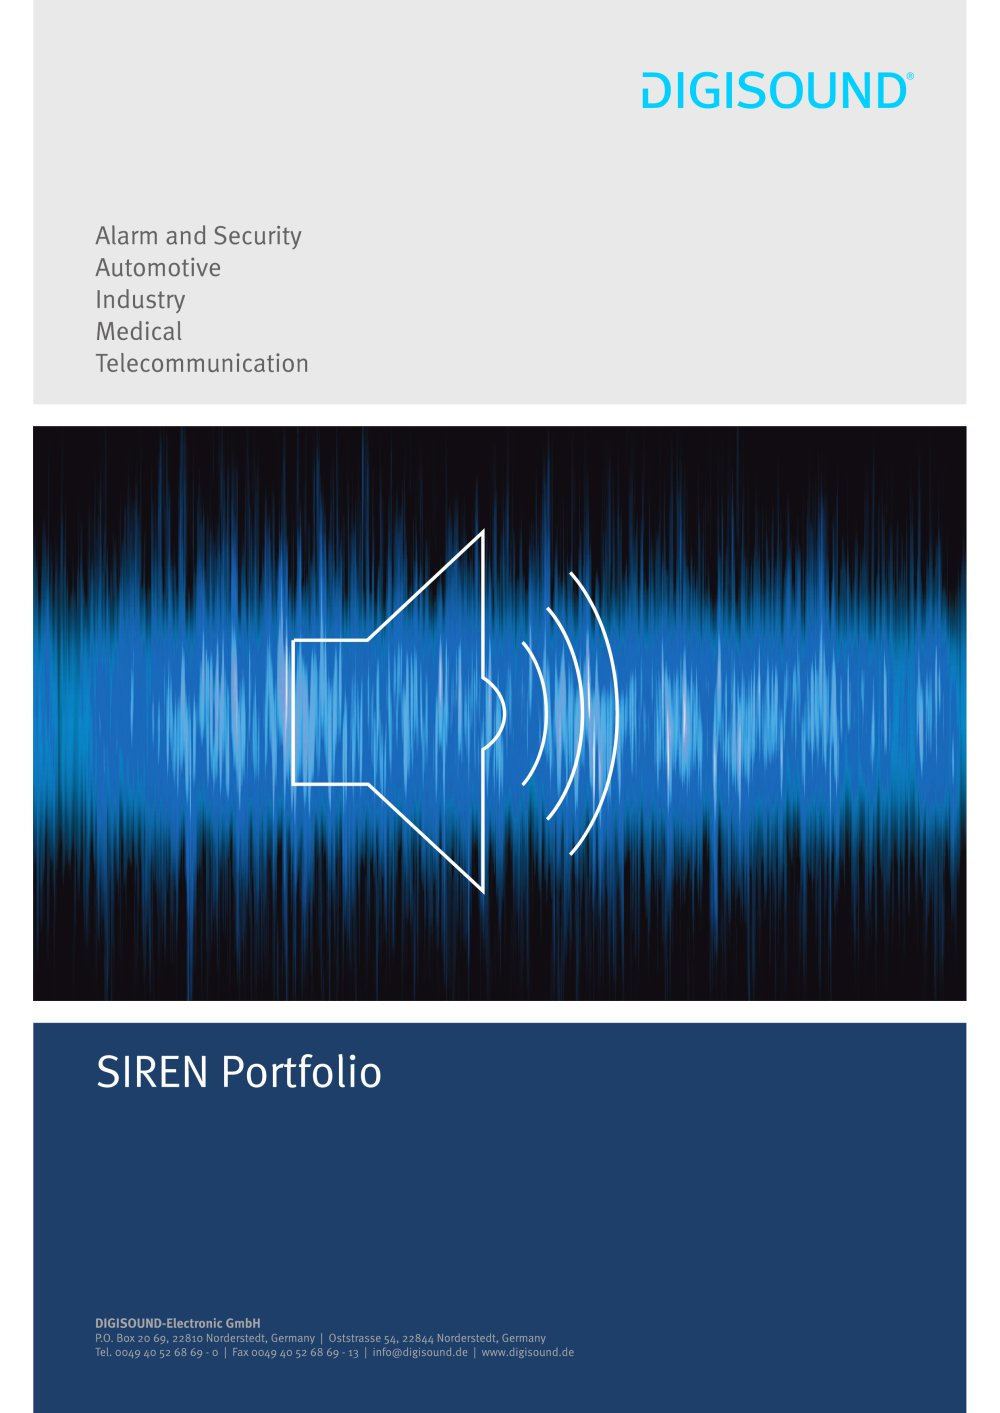 Siren Portfolio Digisound Electronic Pdf Catalogs Technical 12v Waterproof Piezo Electric Buzzer Alarm Sounder 1 4 Pages